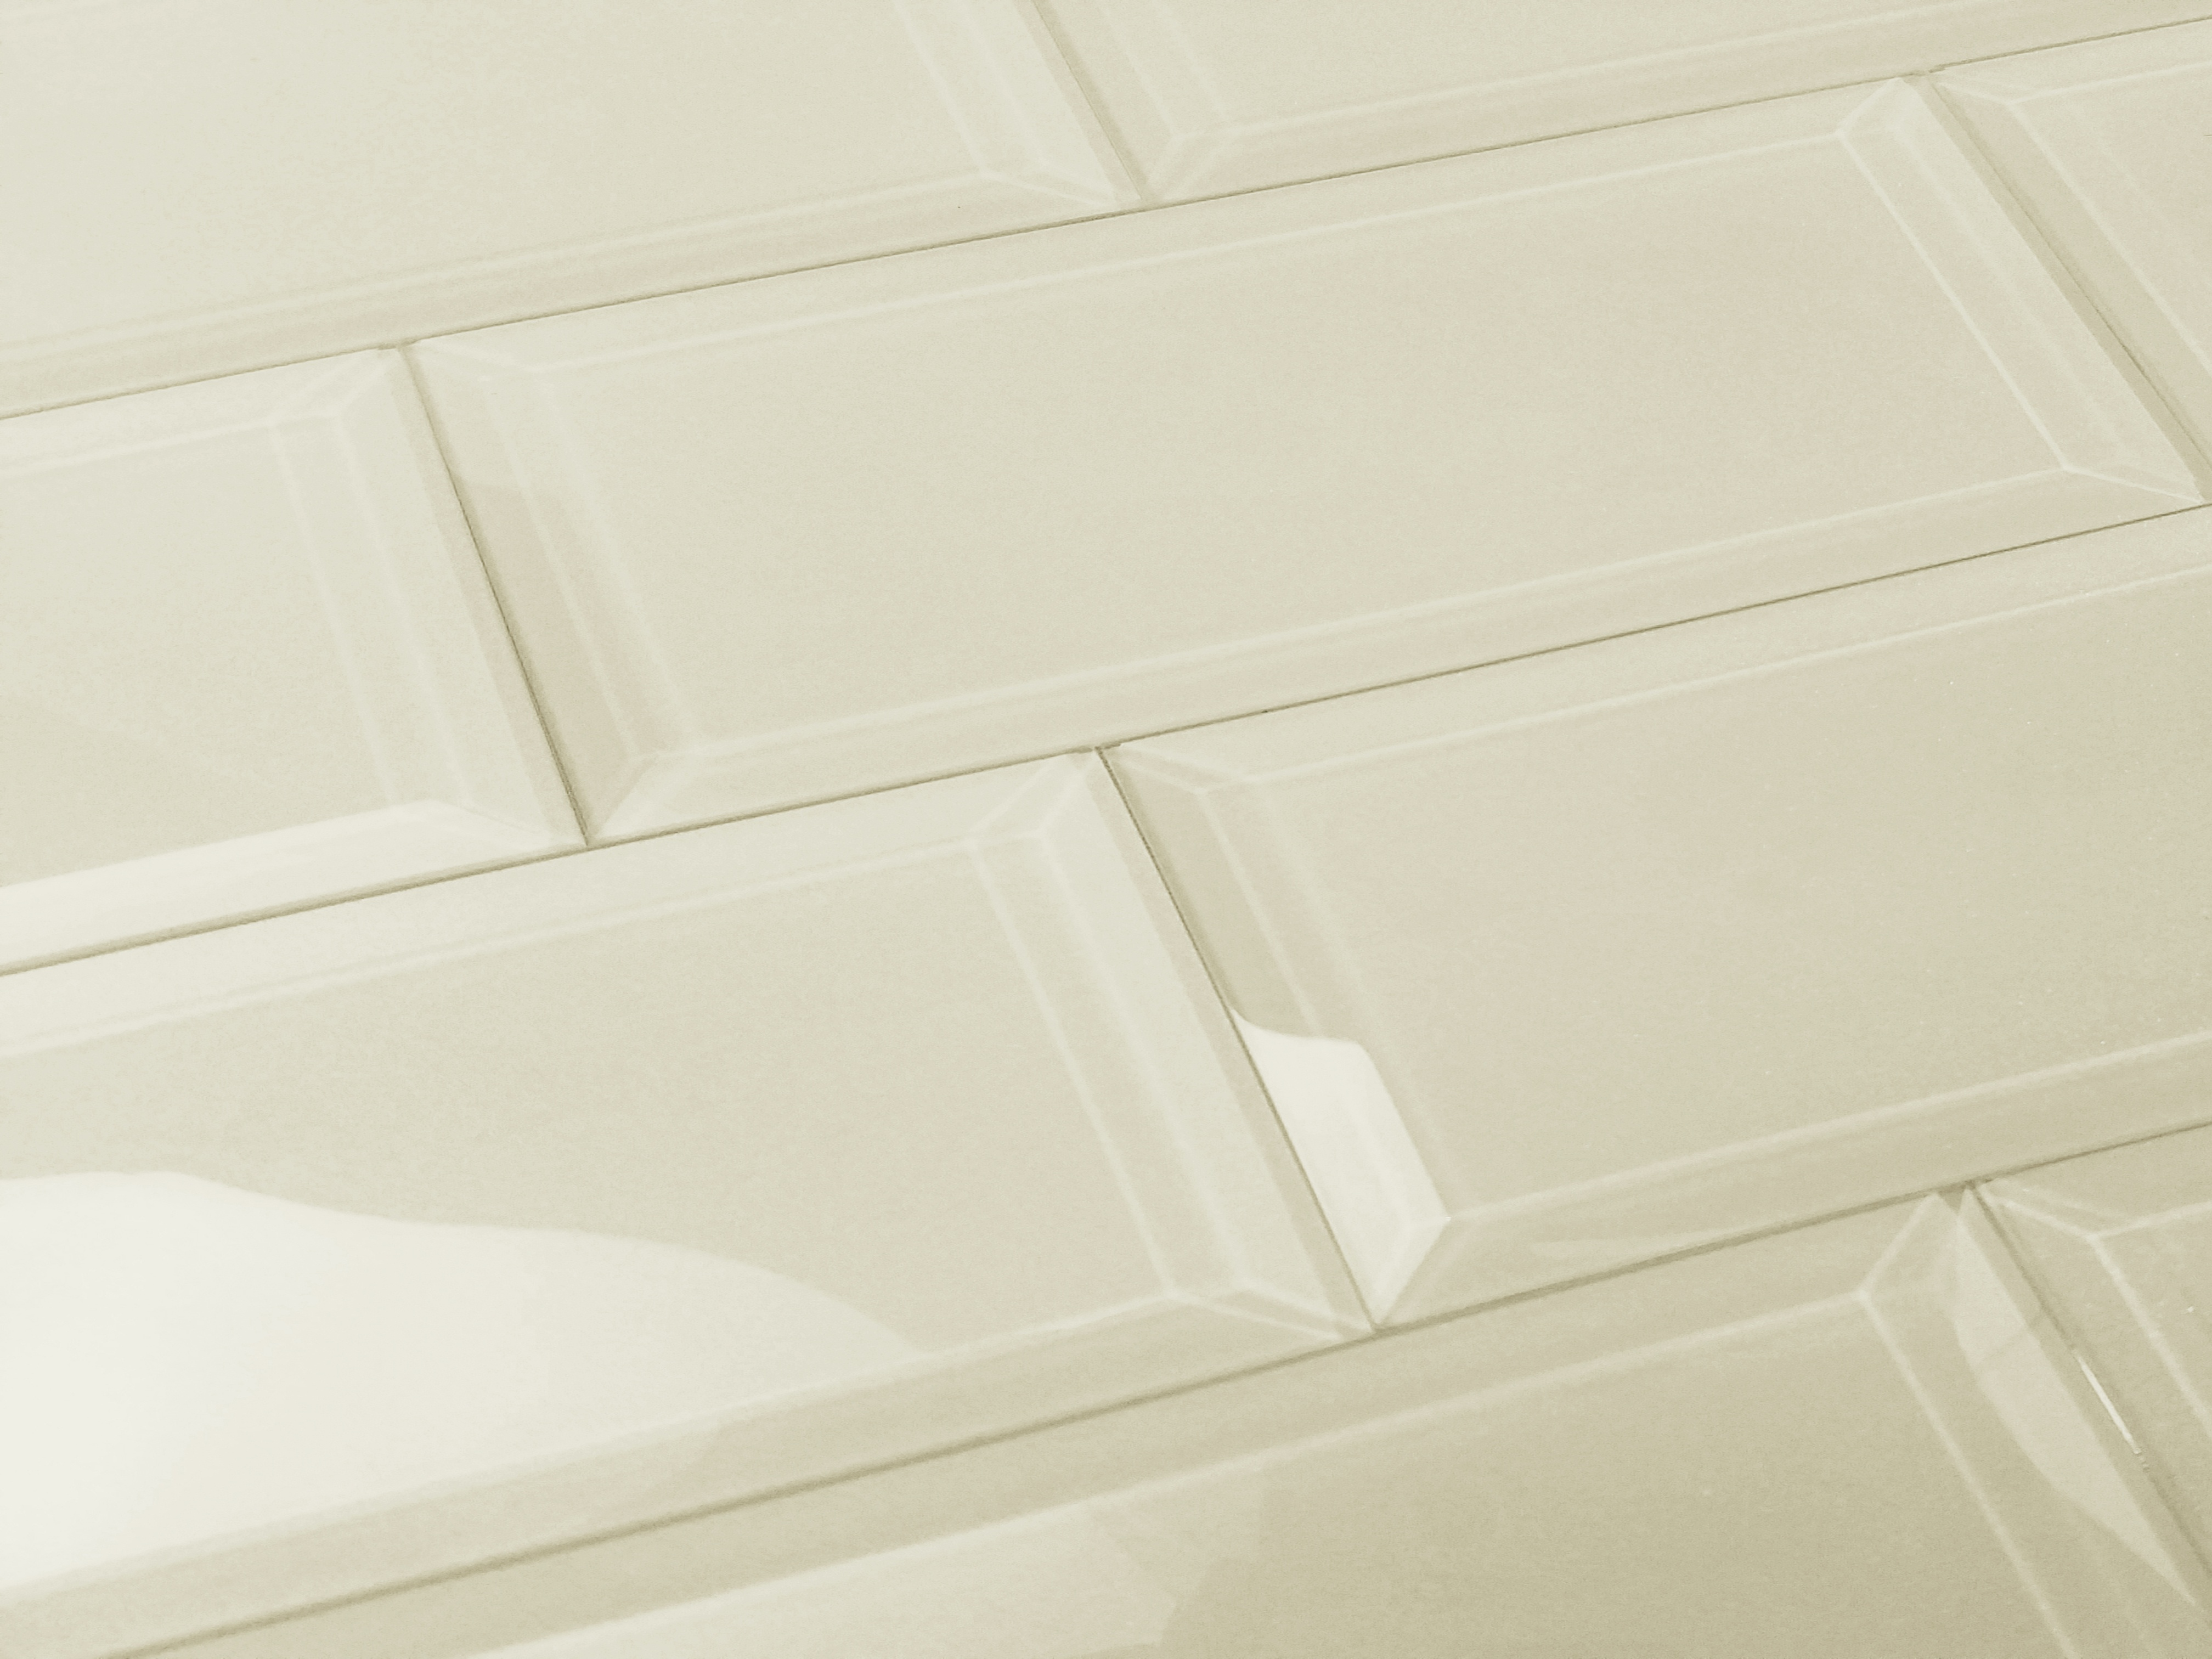 Frosted Elegance 3 in x 12 in Glass Subway Tile in CECILLIA Glossy